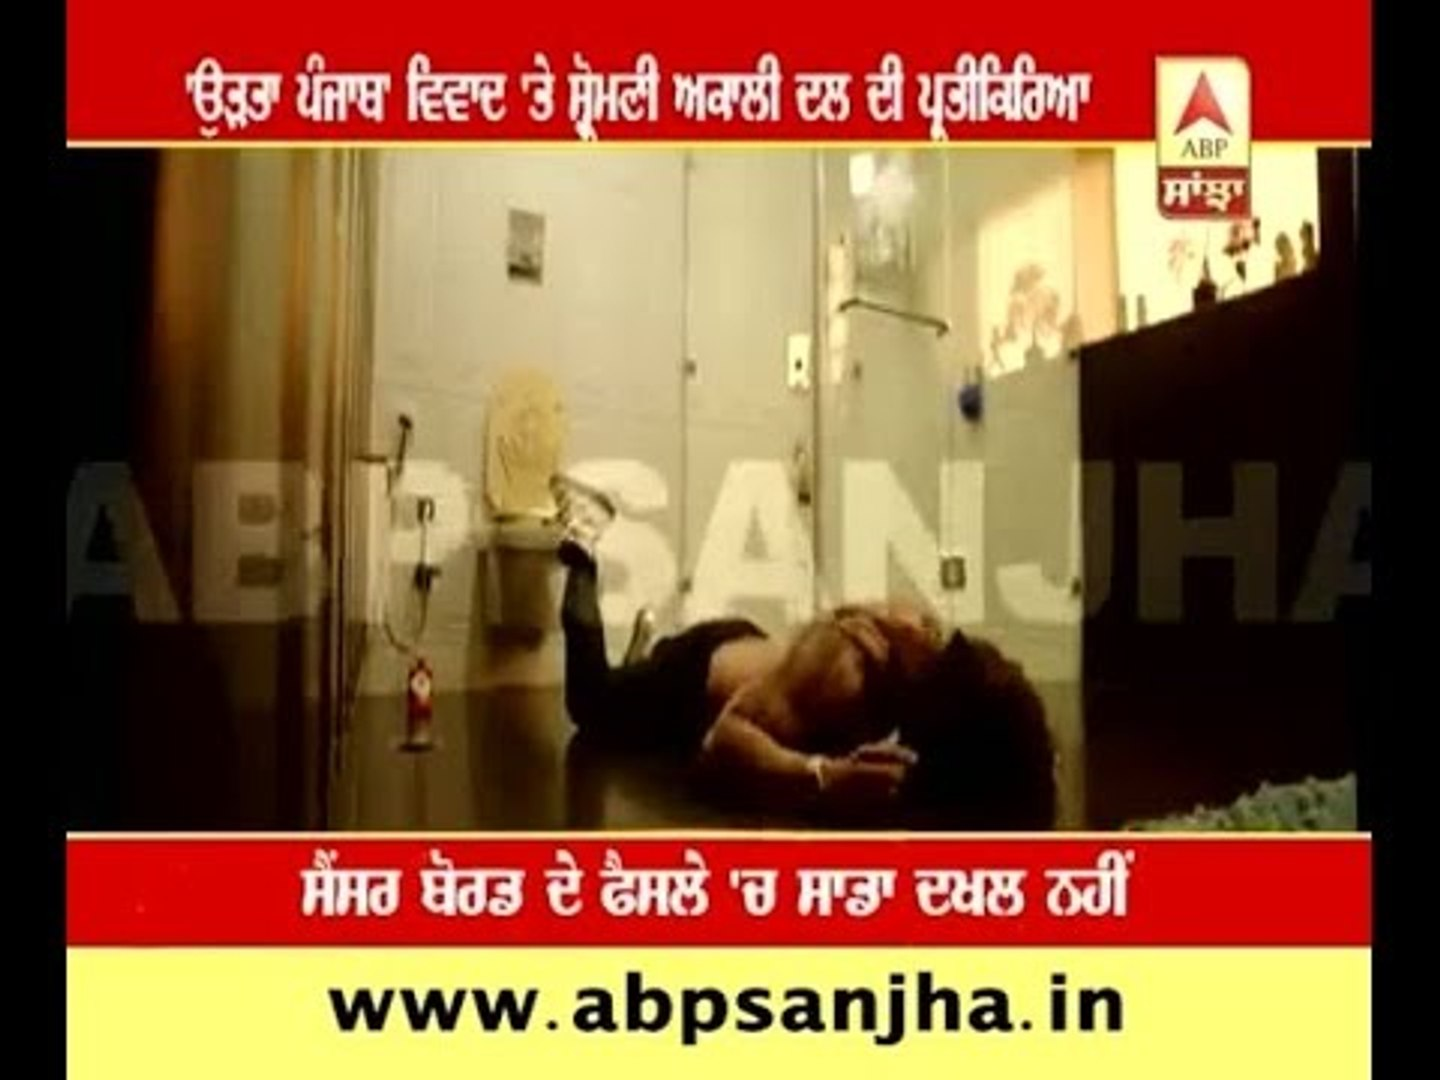 Watch what Akali Dal to say about film 'Udta Punjab'?